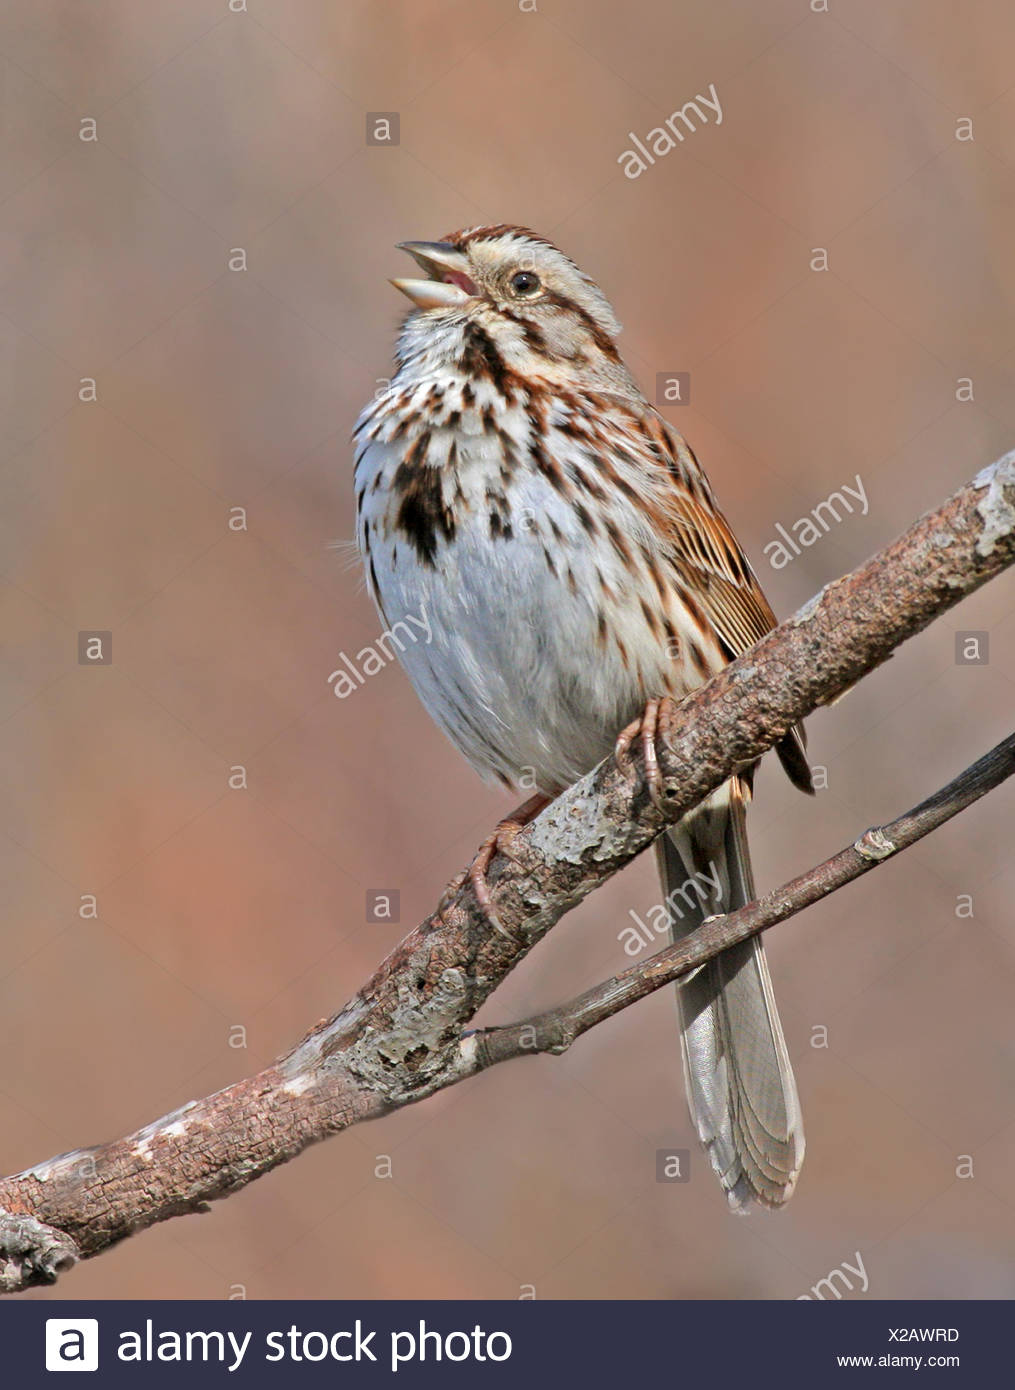 A Song Sparrow, Melospiza melodia, sings from a perch, in Saskatoon, Saskatchewan - Stock Image